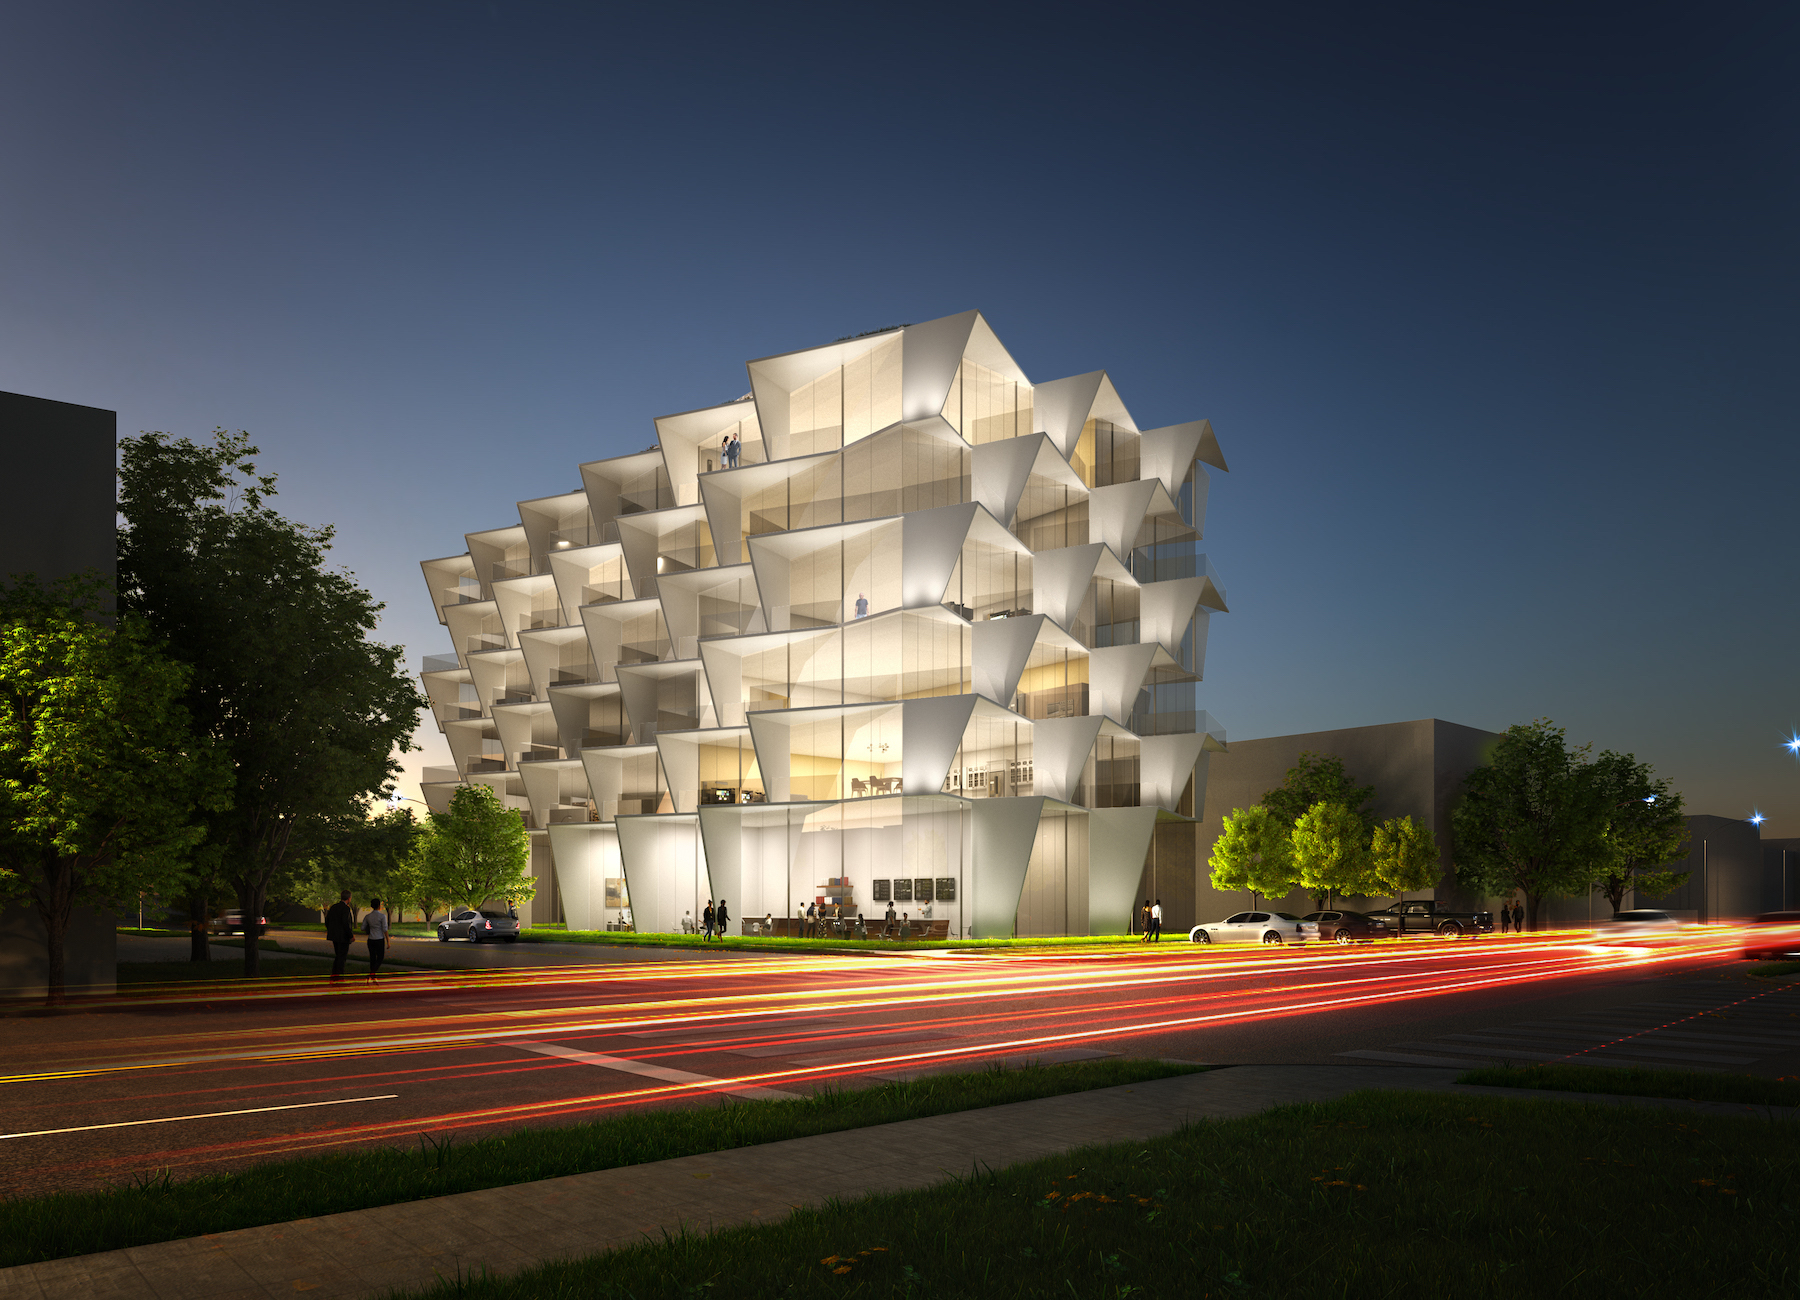 This residential building cleverly provides a self-shading facade for its residents as well as privacy. The floor to ceiling glass enables residents to capture the best daylight and views from within the apartments.